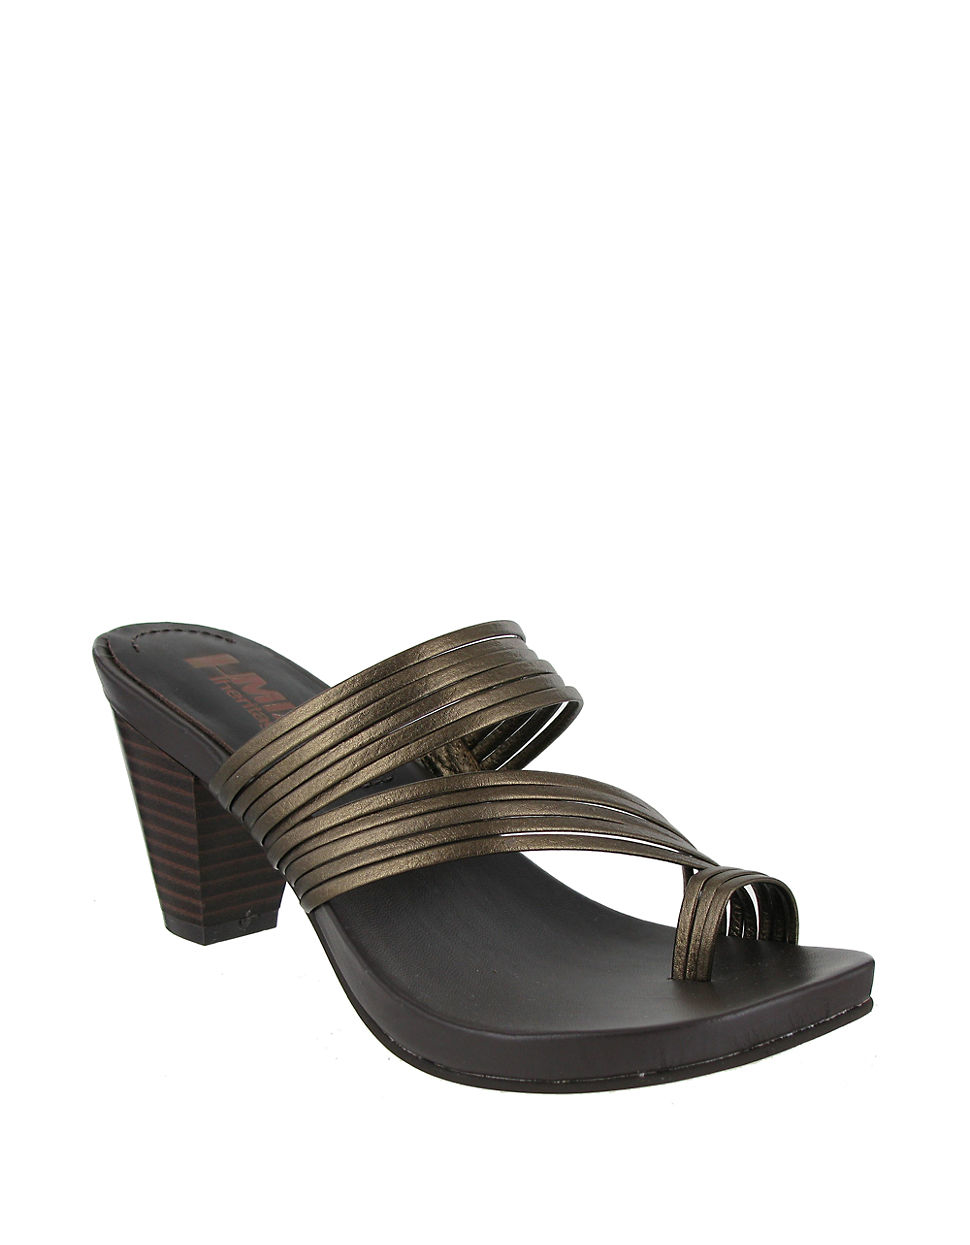 091ba345ae0a Lyst - Mia Virgo Leather Toe Ring Sandals in Metallic